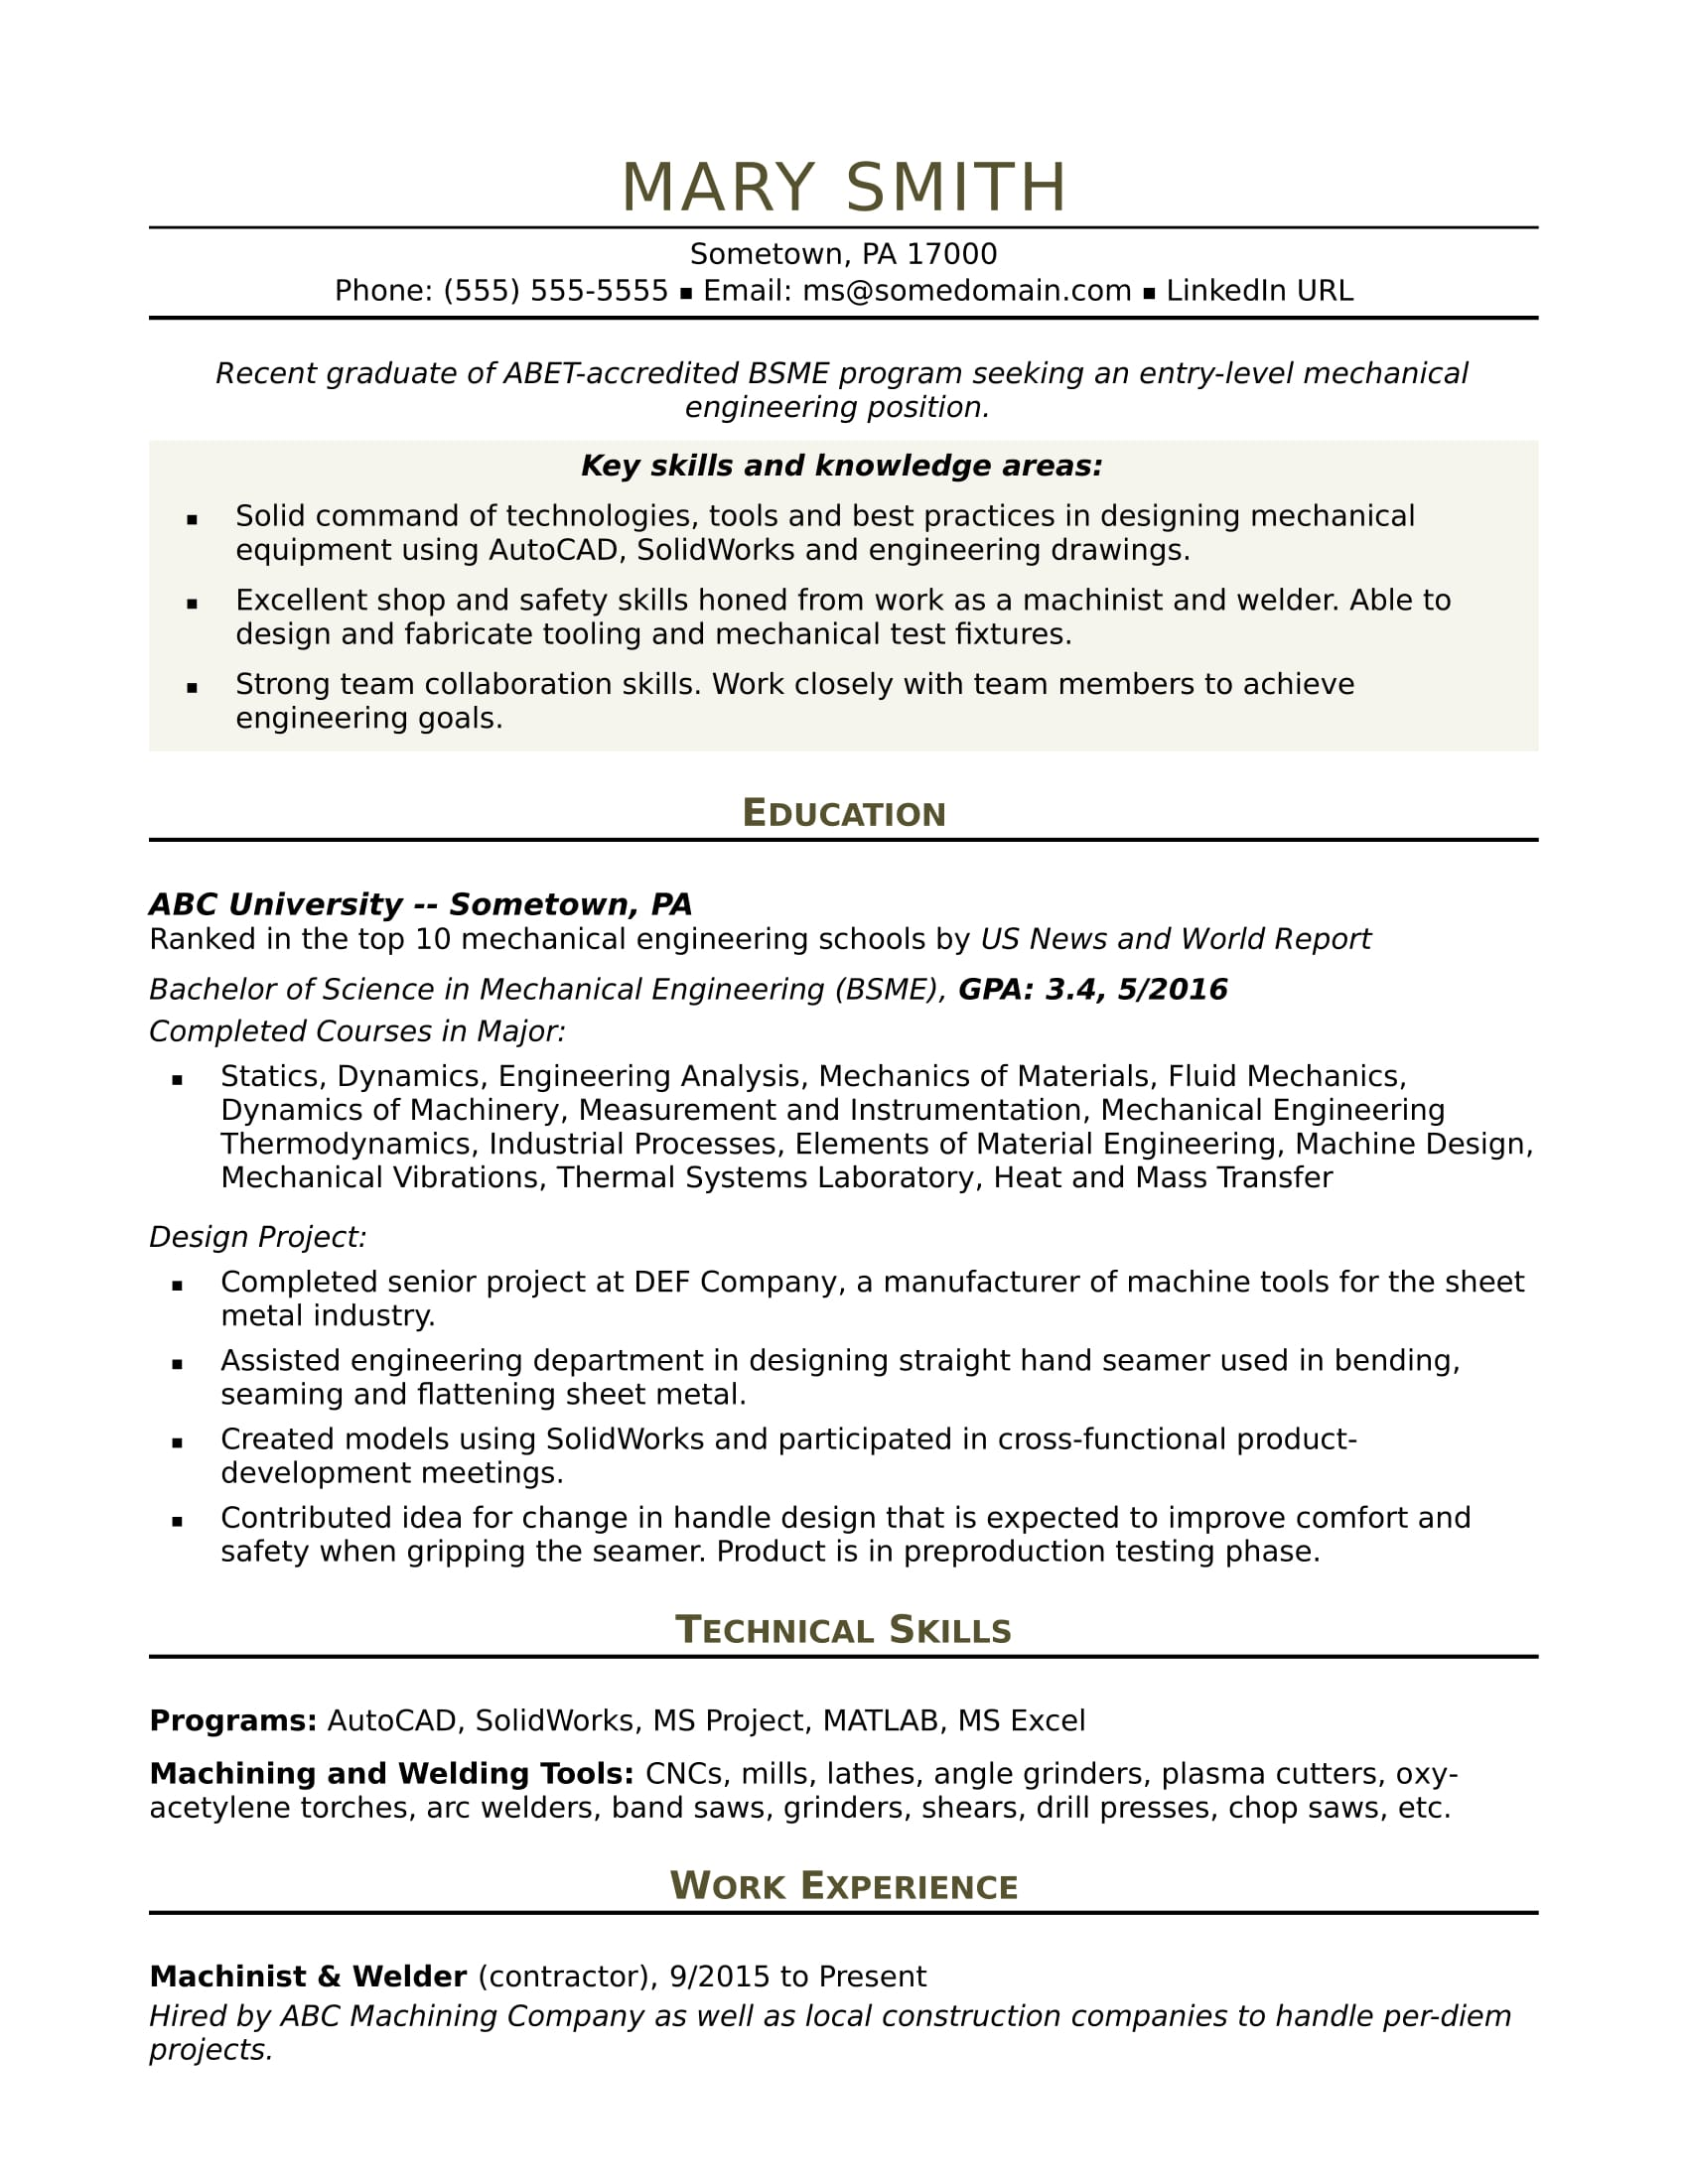 sample resume for an entry level mechanical engineer - Science Major Resume Skills